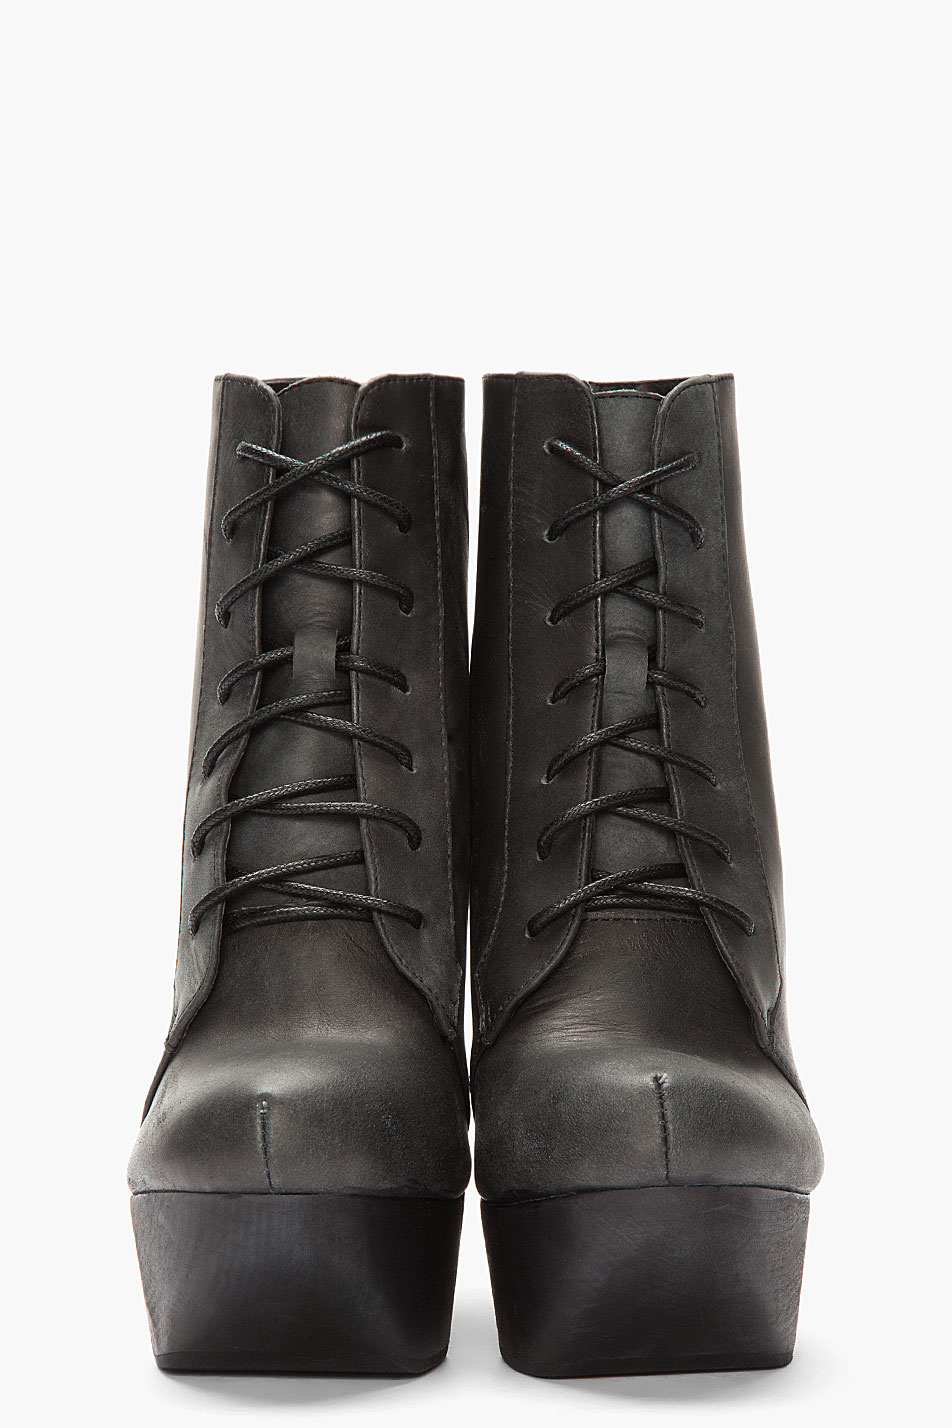 Jeffrey Campbell Black Leather Cutout Roxie Wedge Boots Lyst